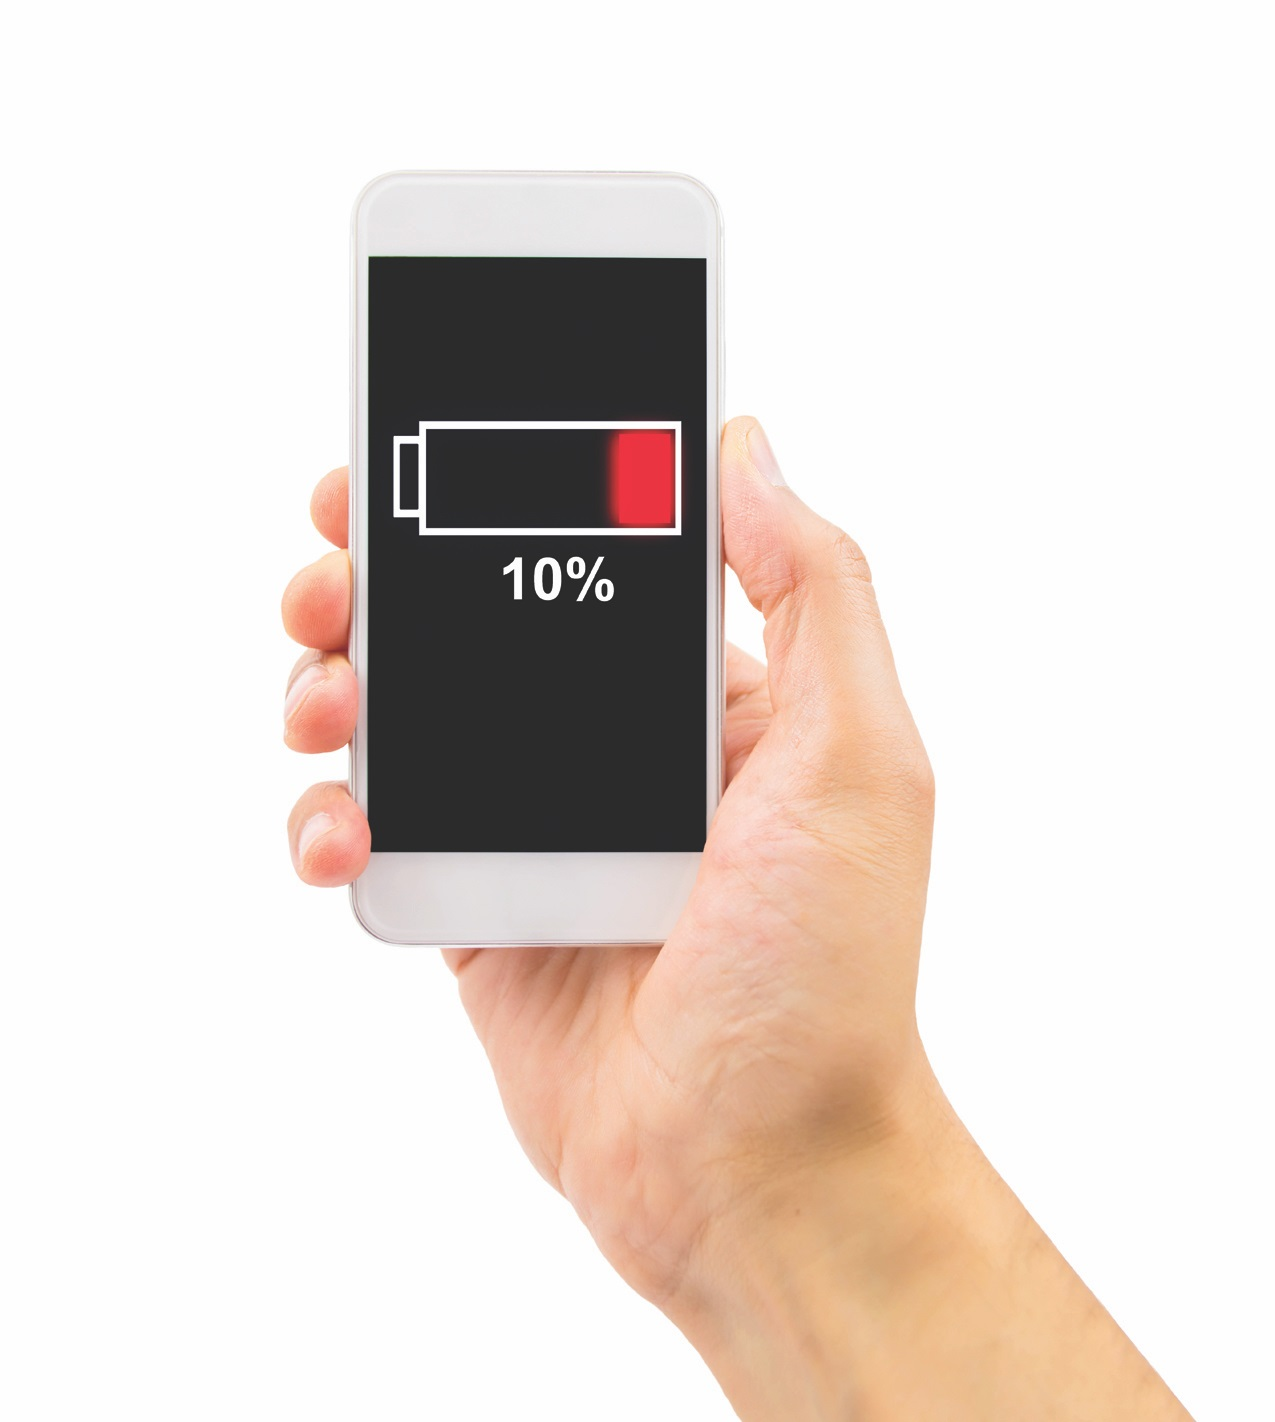 Simple tricks to extend the life of your smartphone battery